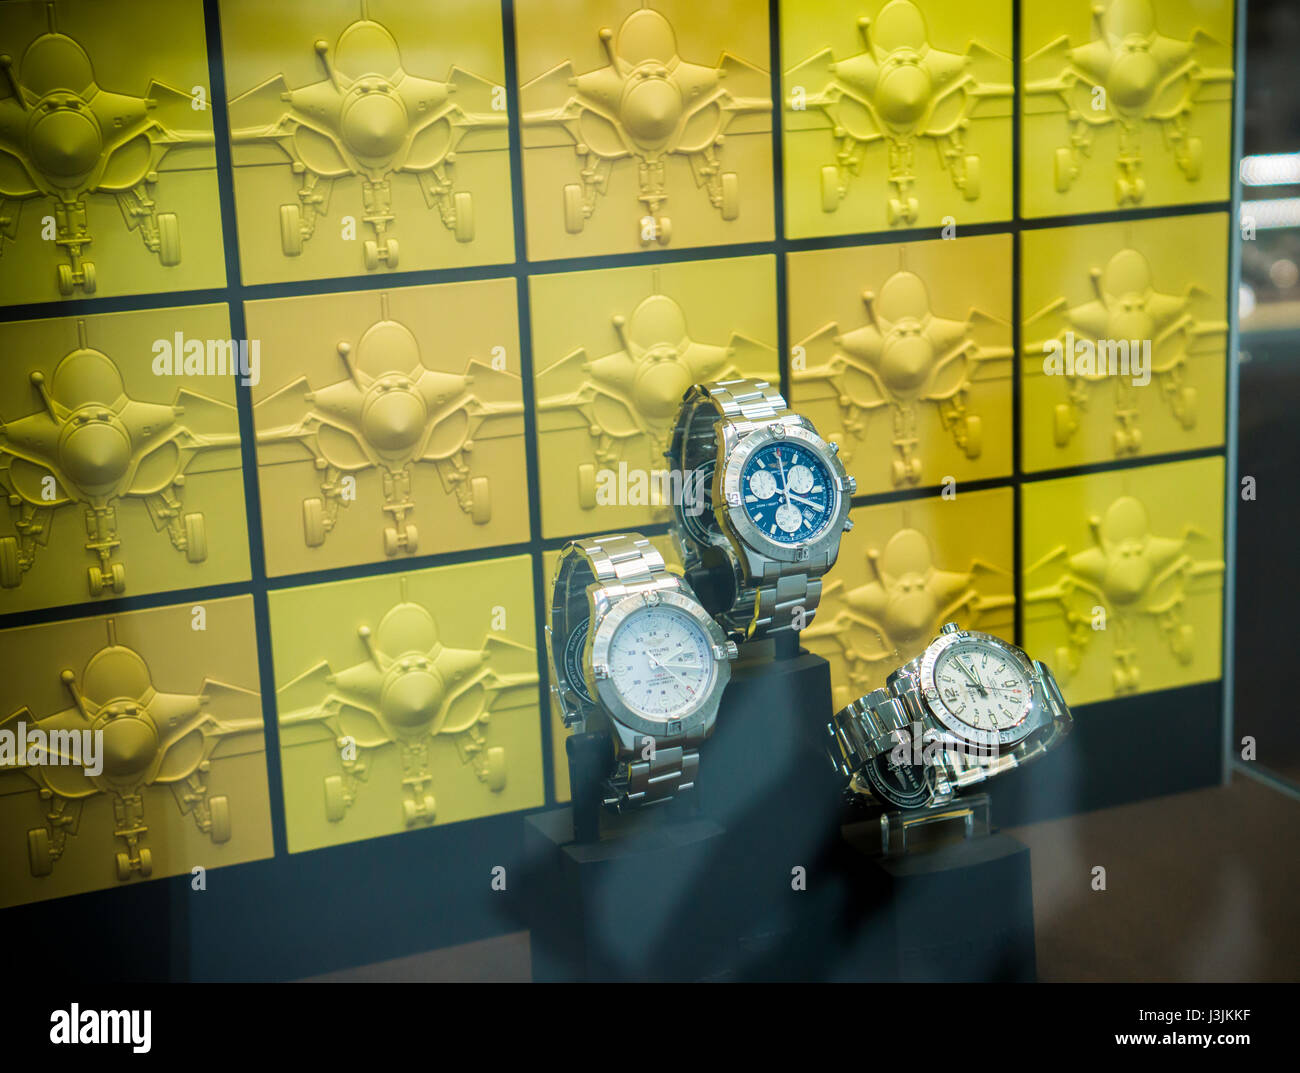 Window display in a Breitling retail store in New York on Saturday, April 29, 2017. CVC Capital Partners, a private - Stock Image